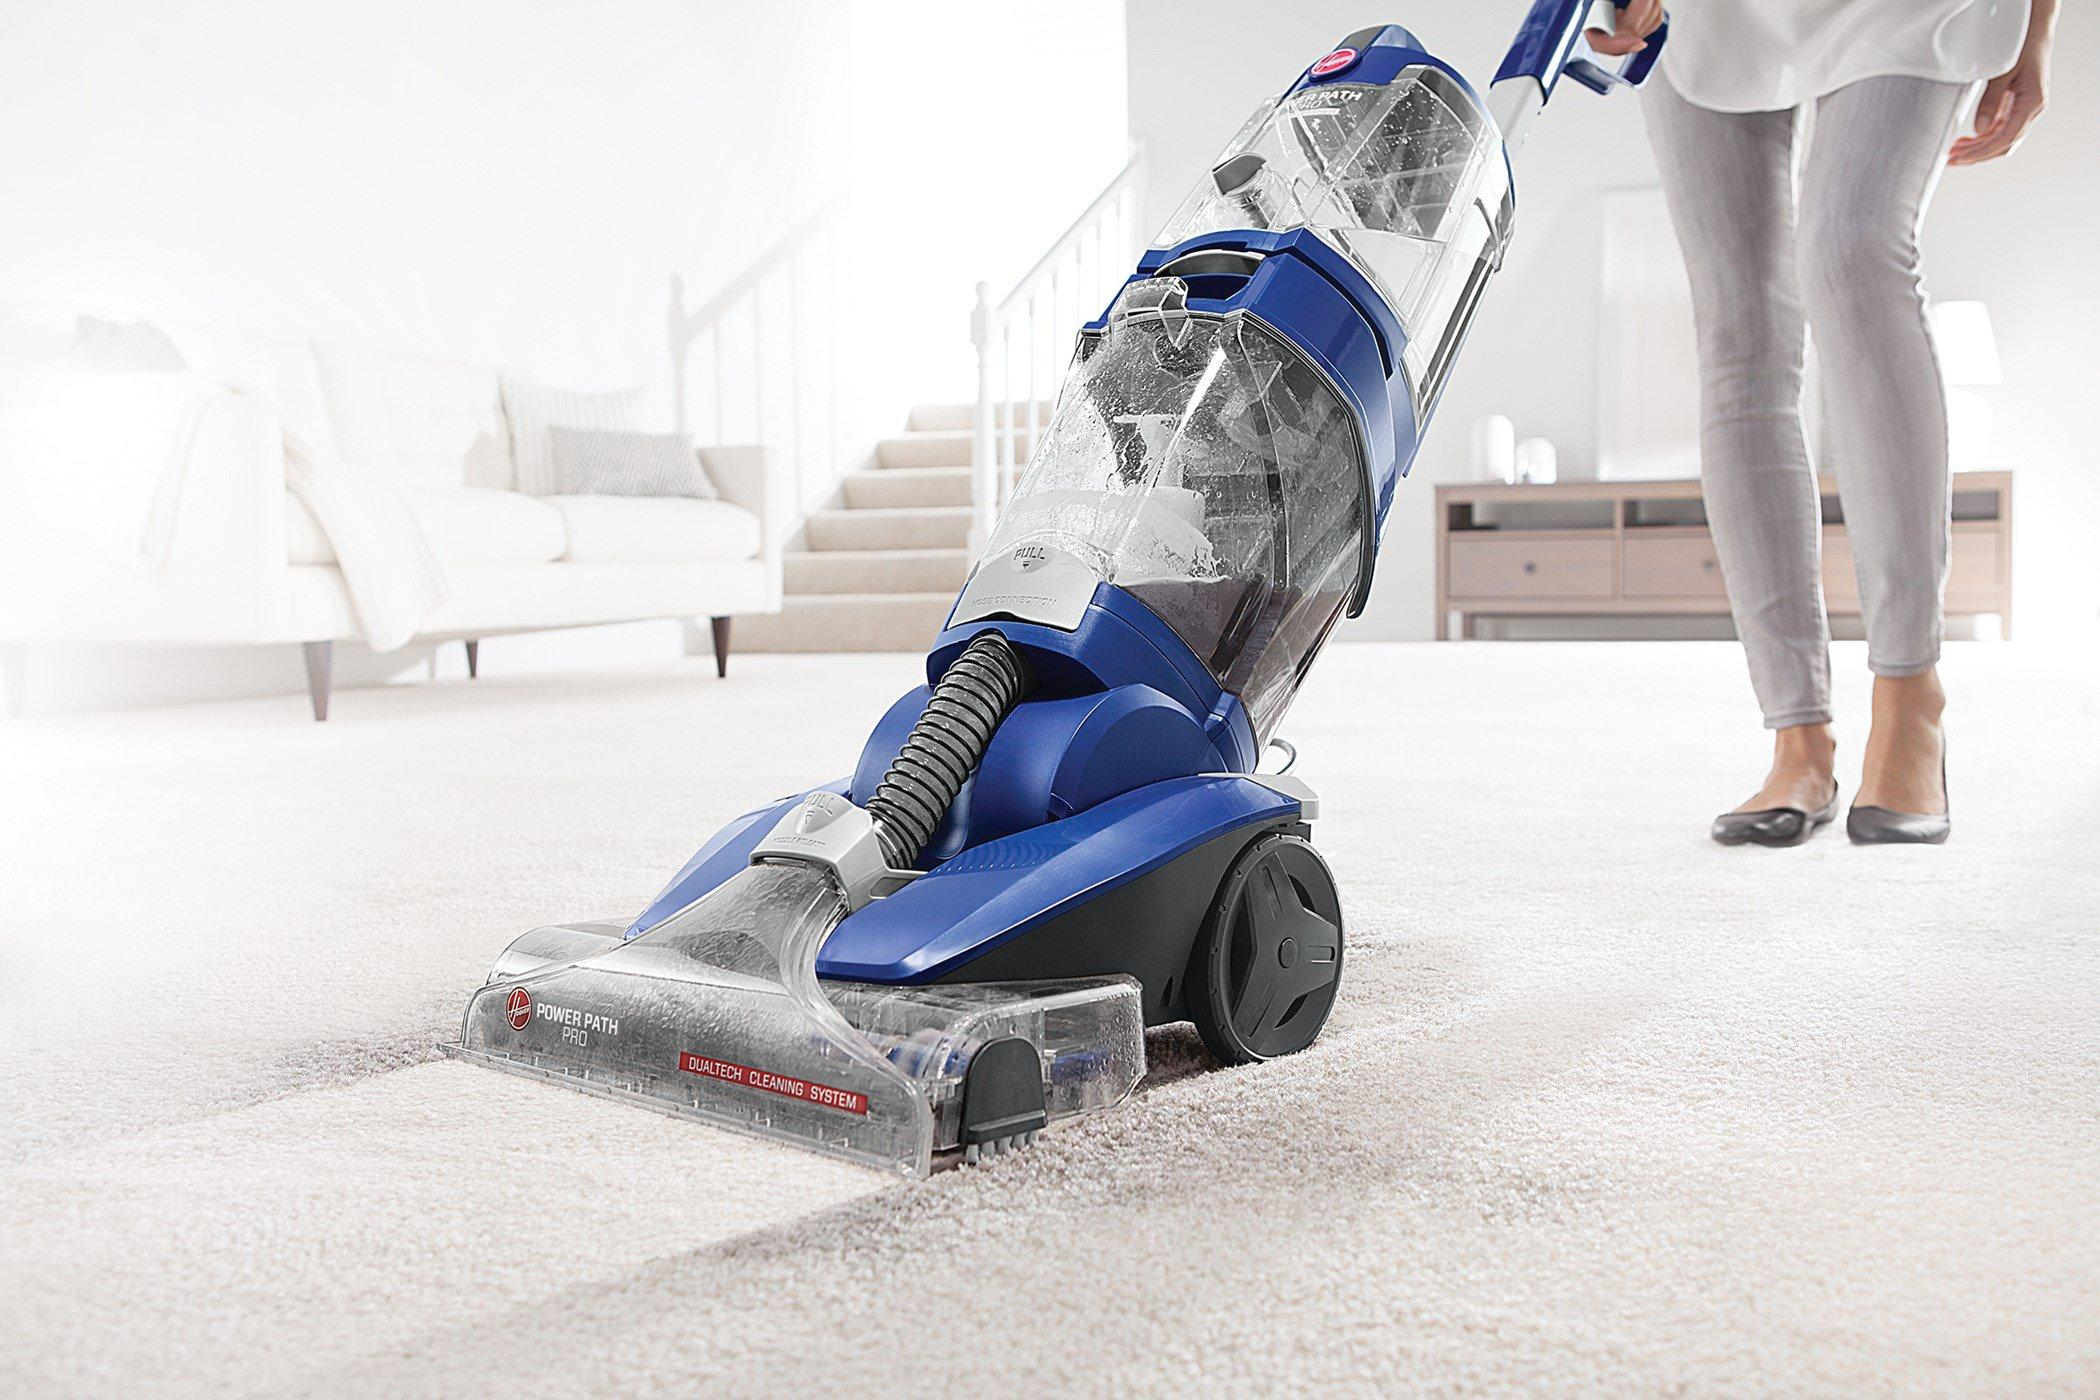 Reconditioned Power Path Pro XL Carpet Cleaner Upright Vacuum3